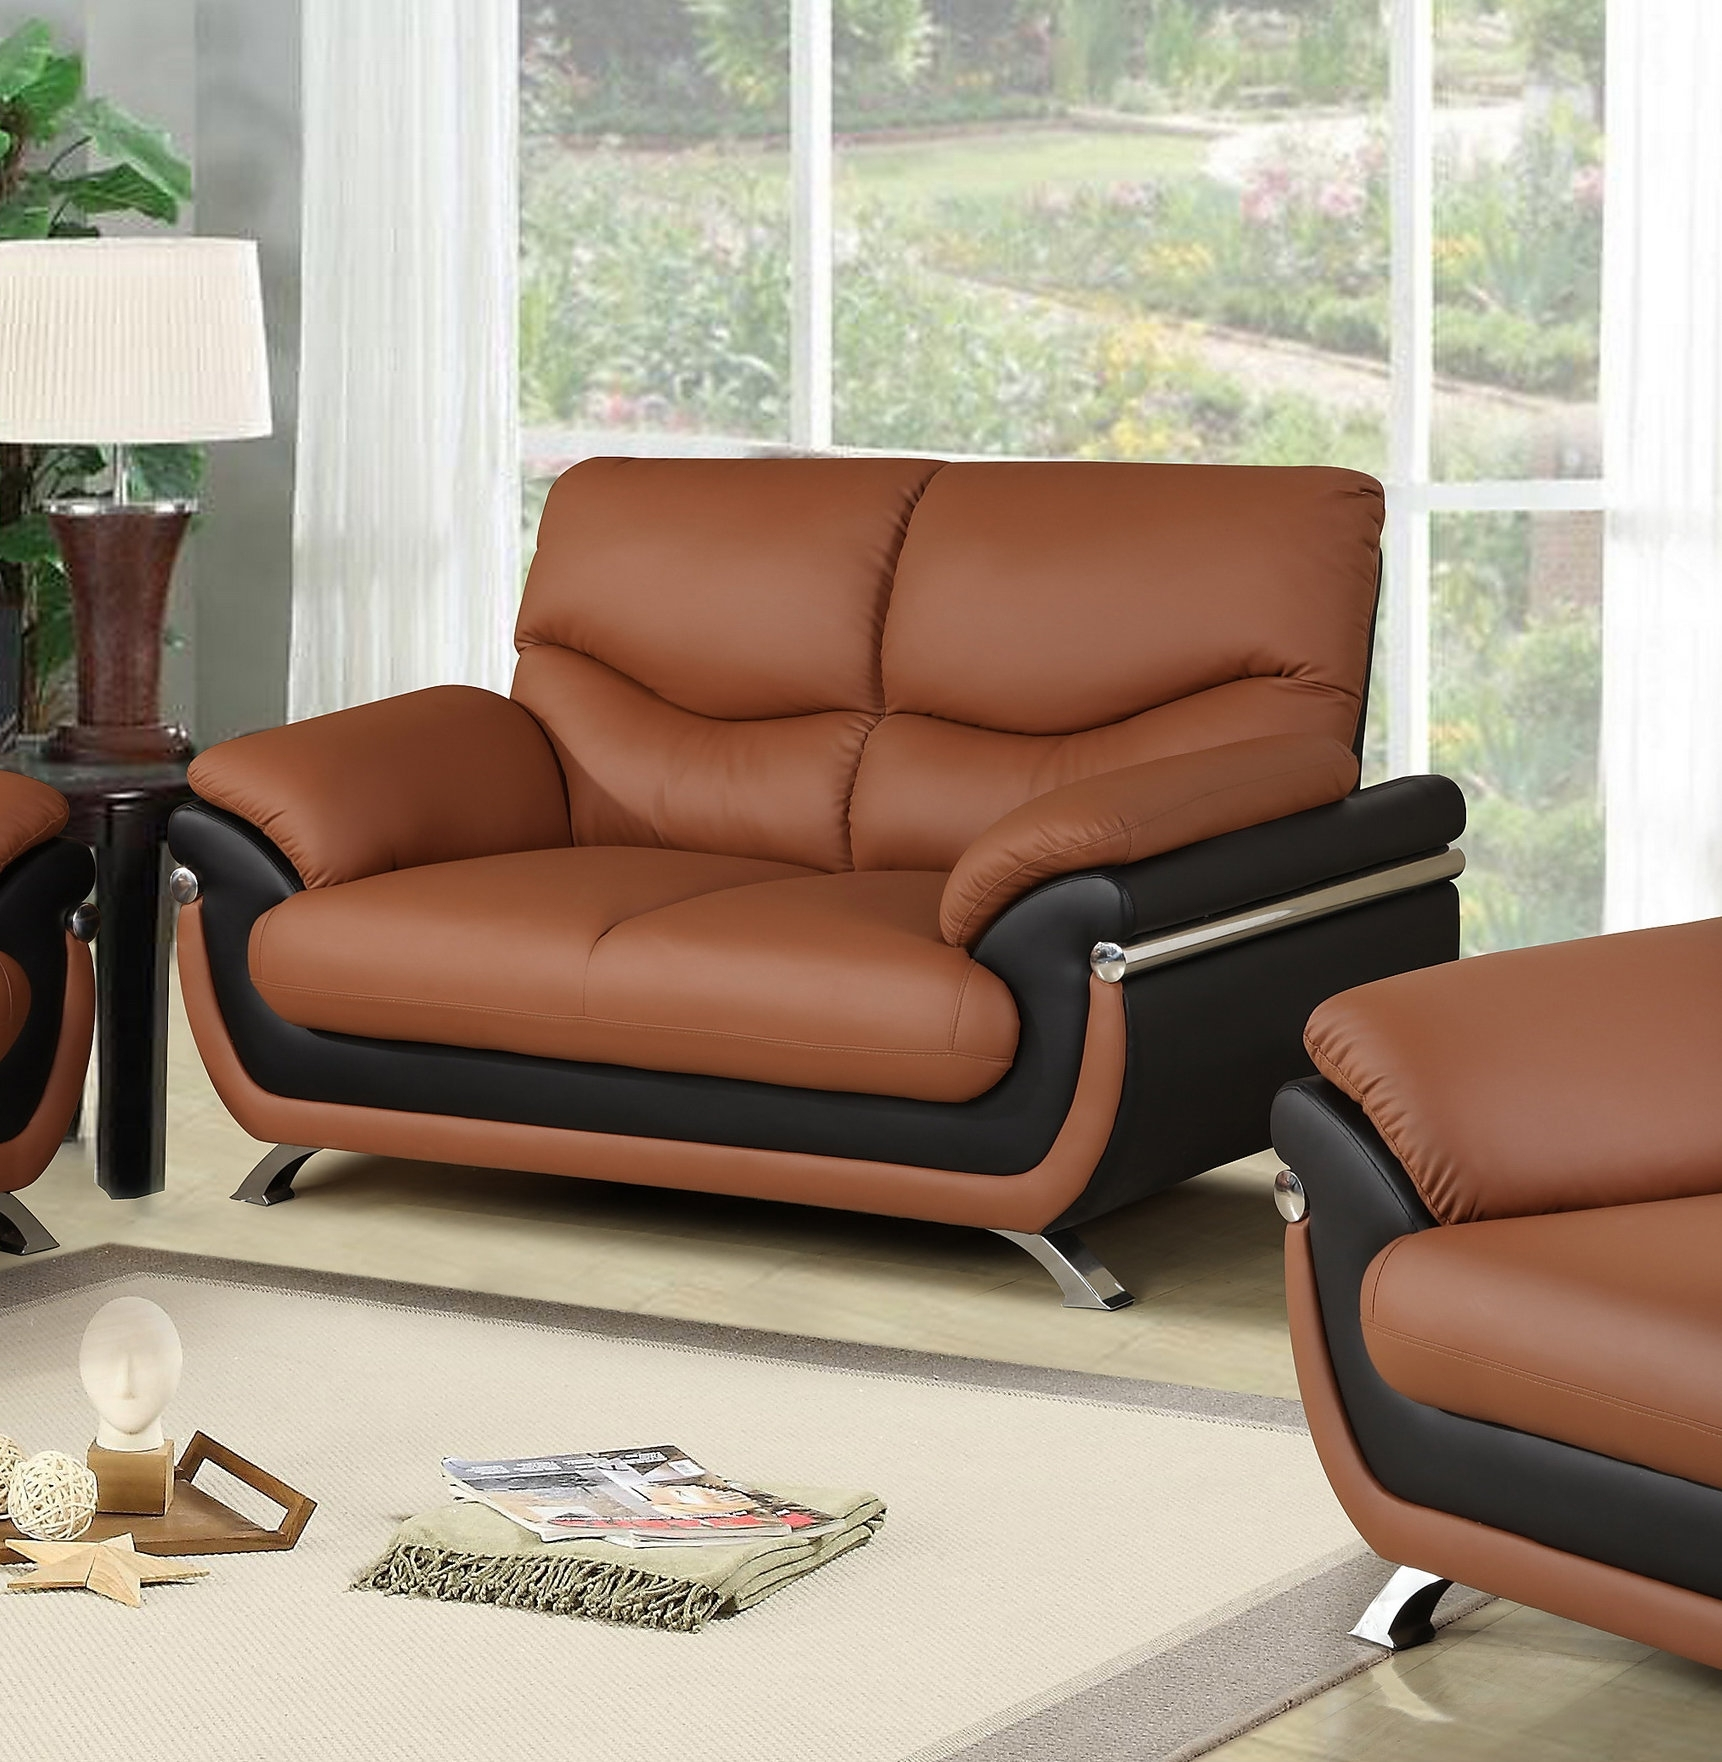 Beverly Fine Furniture | Wayfair with regard to Declan 3 Piece Power Reclining Sectionals With Left Facing Console Loveseat (Image 6 of 30)